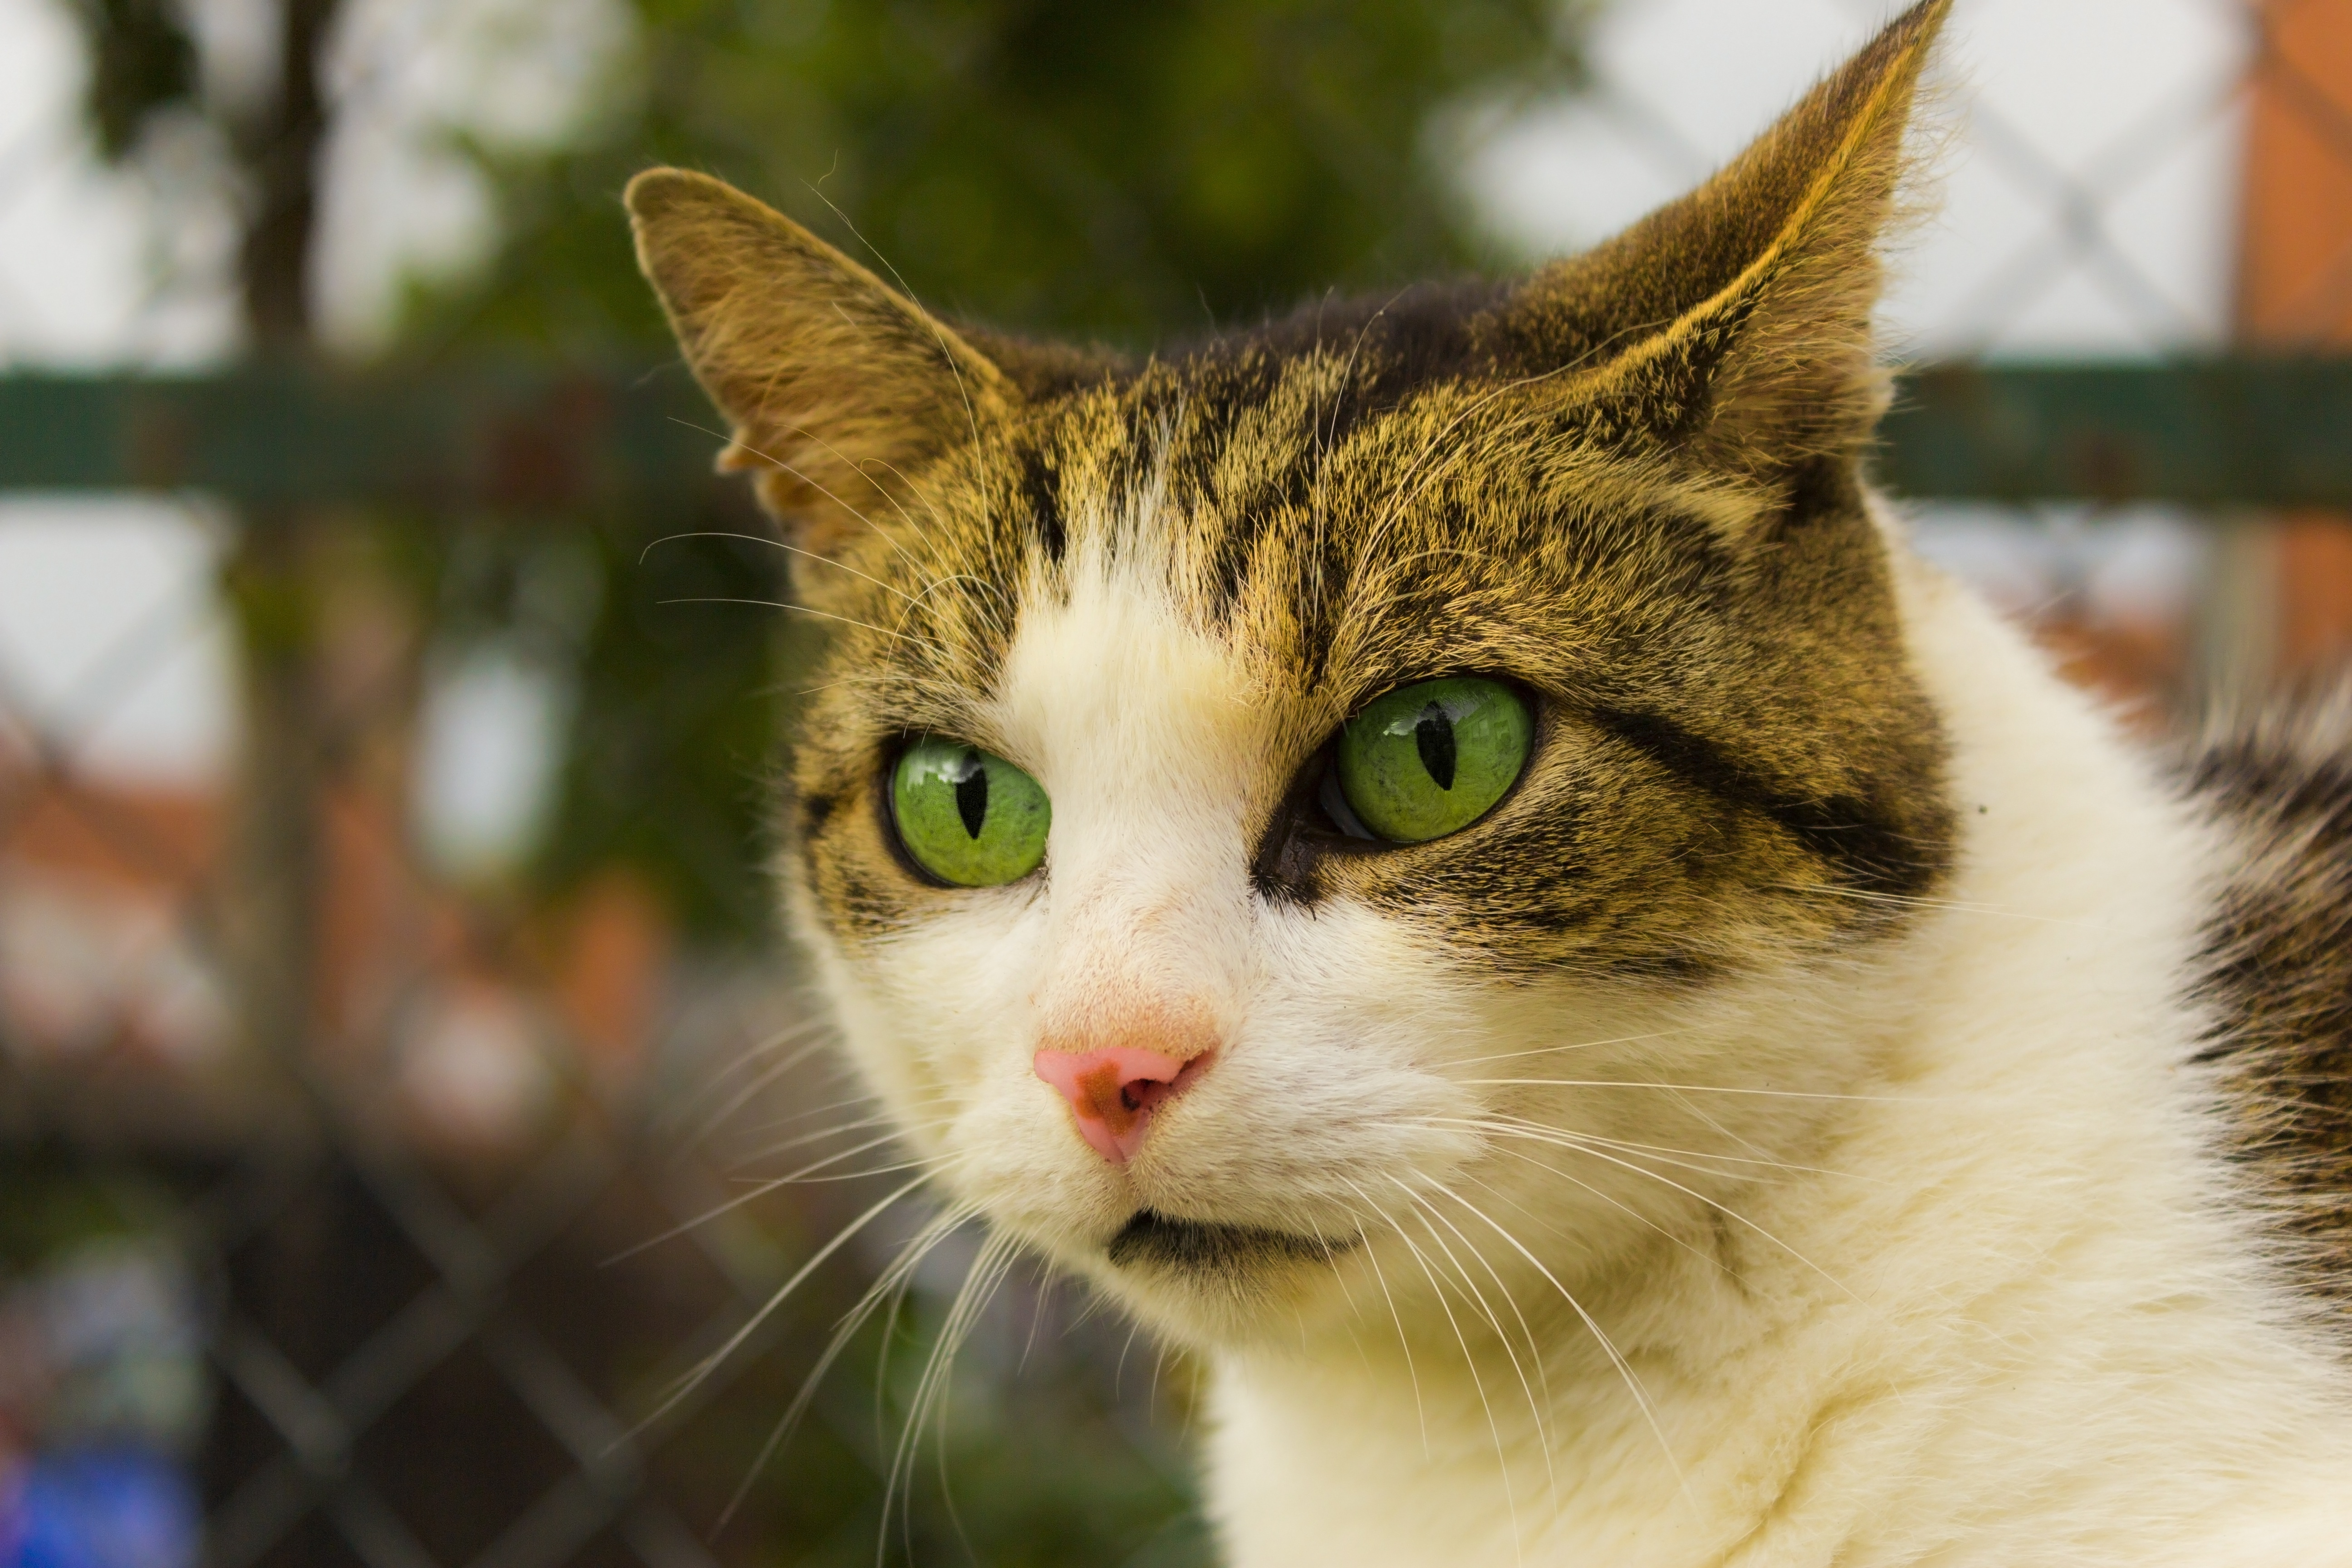 120858 download wallpaper Animals, Cat, Muzzle, Spotted, Spotty, Green Eyed, Green-Eyed screensavers and pictures for free